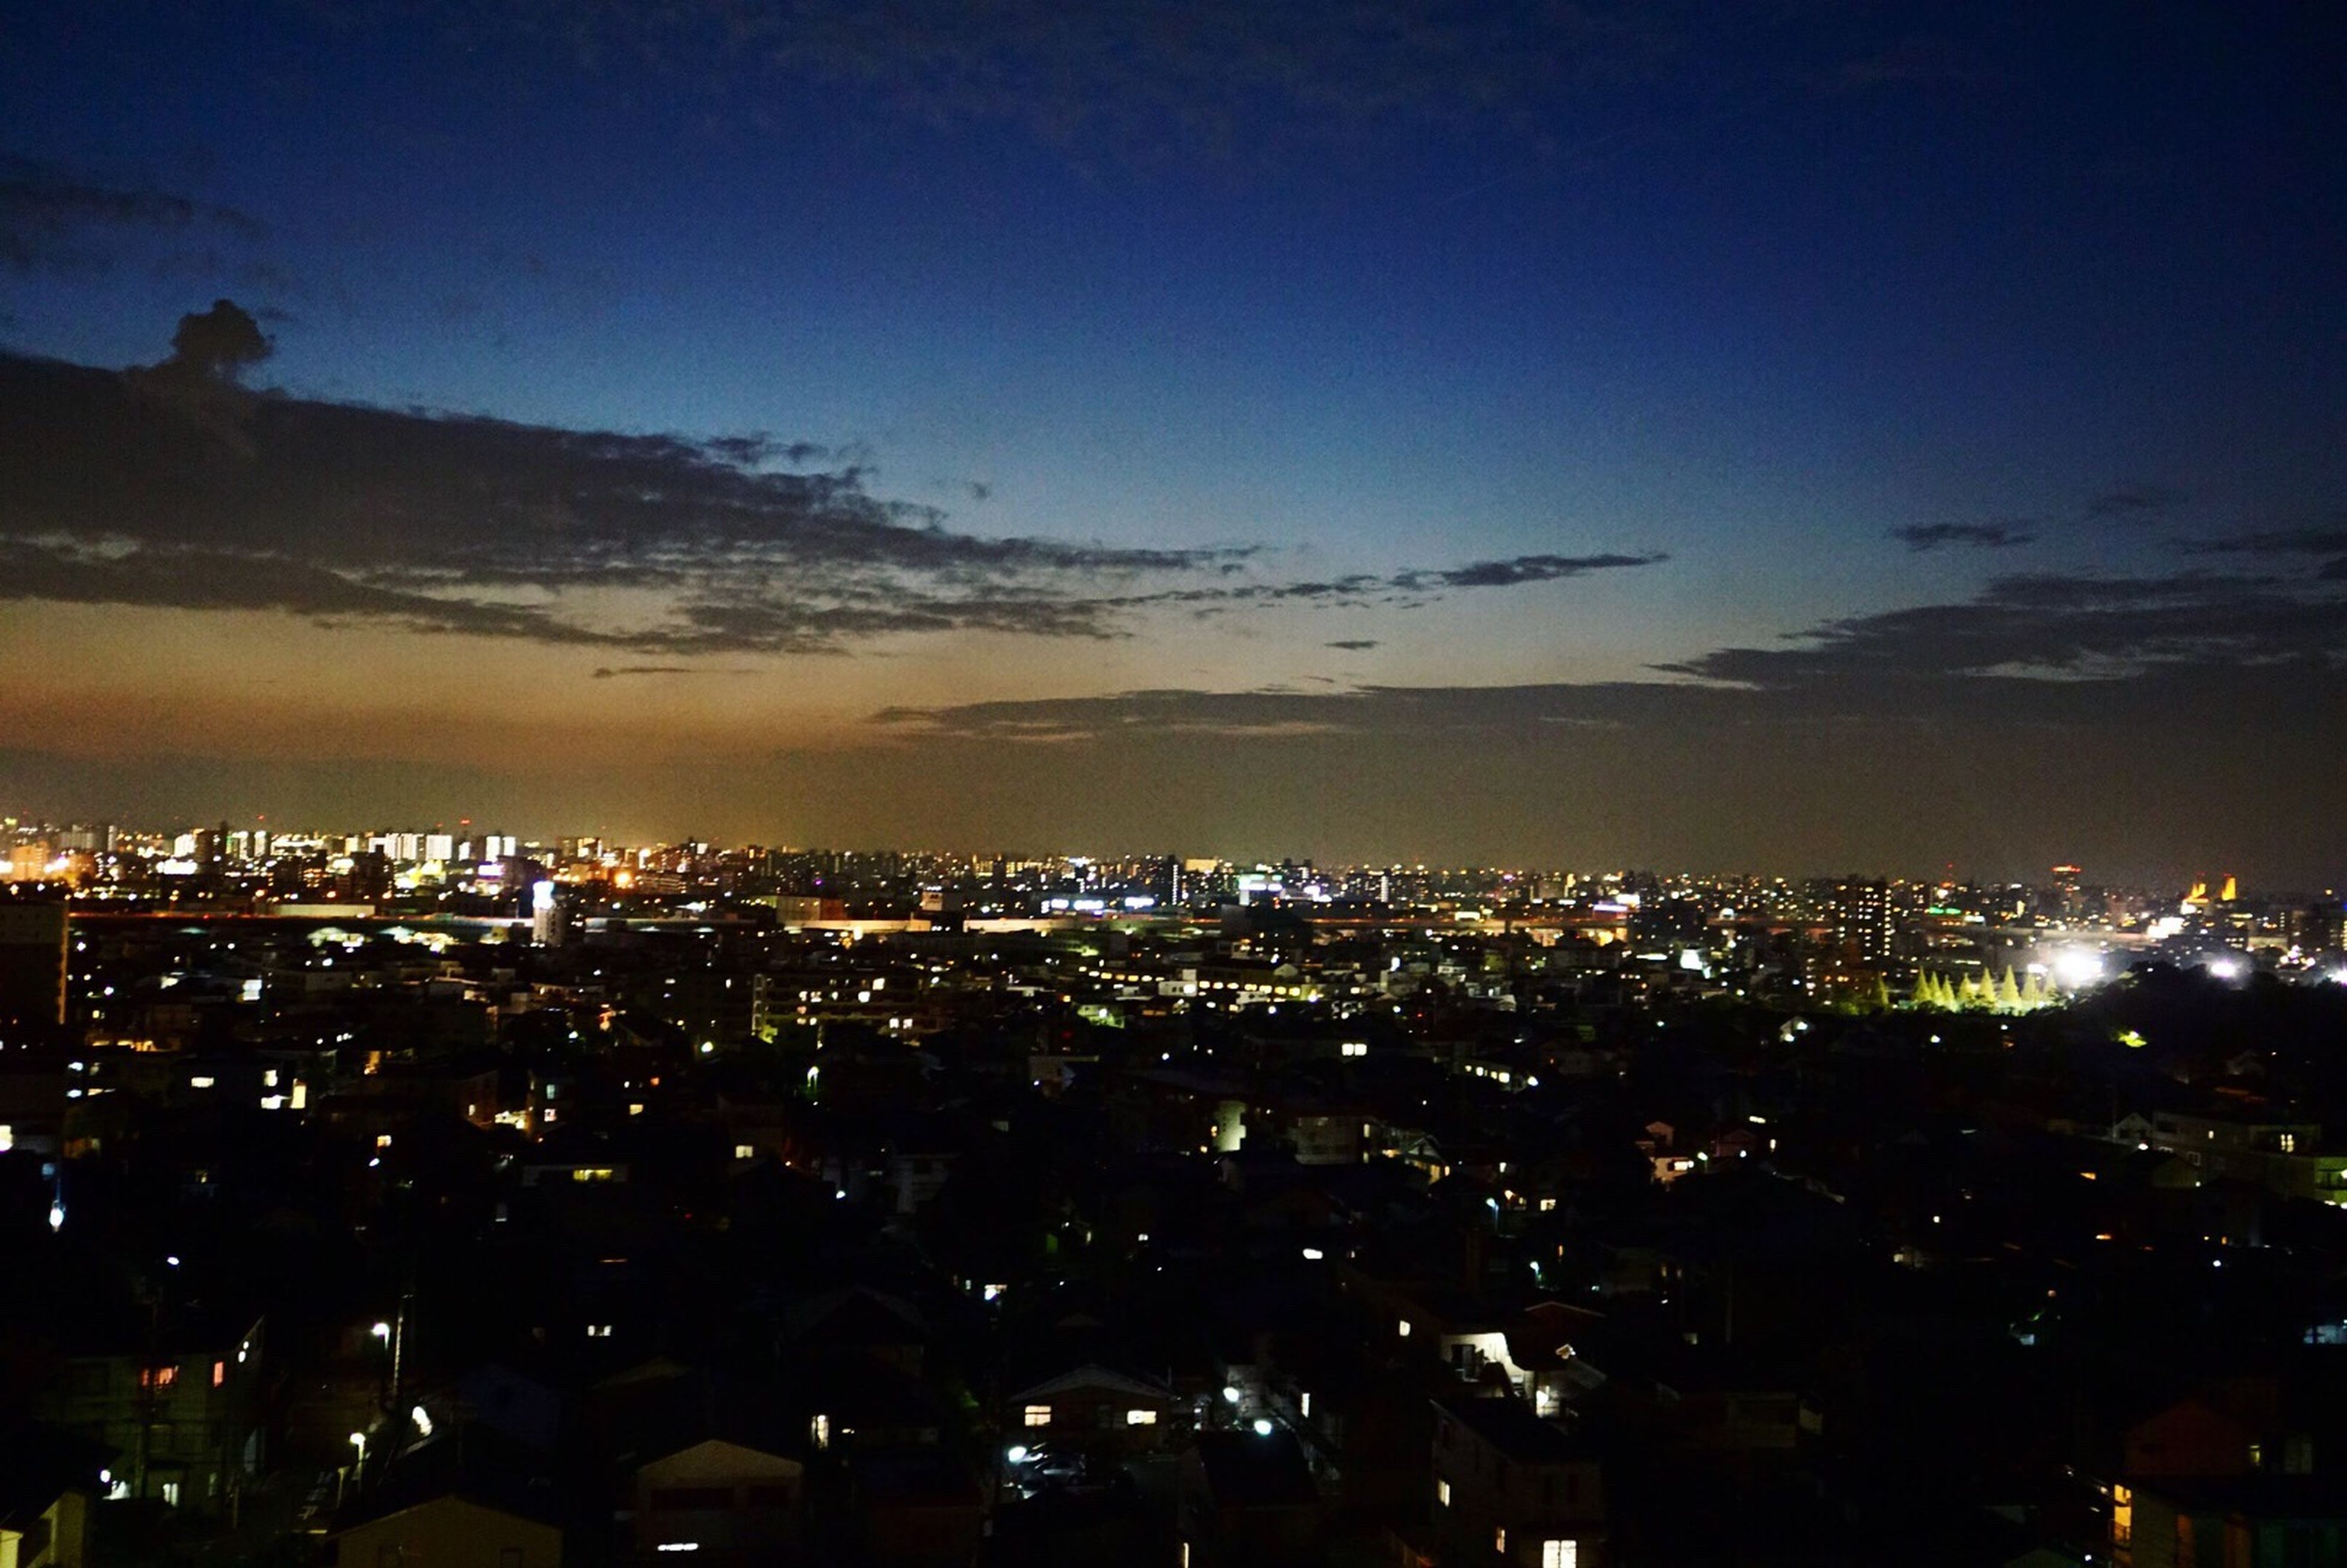 illuminated, city, architecture, cityscape, built structure, building exterior, night, sky, crowded, dusk, city life, high angle view, glowing, wide shot, wide, travel destinations, development, dark, cloud - sky, aerial view, modern, horizon, skyscraper, outdoors, residential district, majestic, no people, building story, scenics